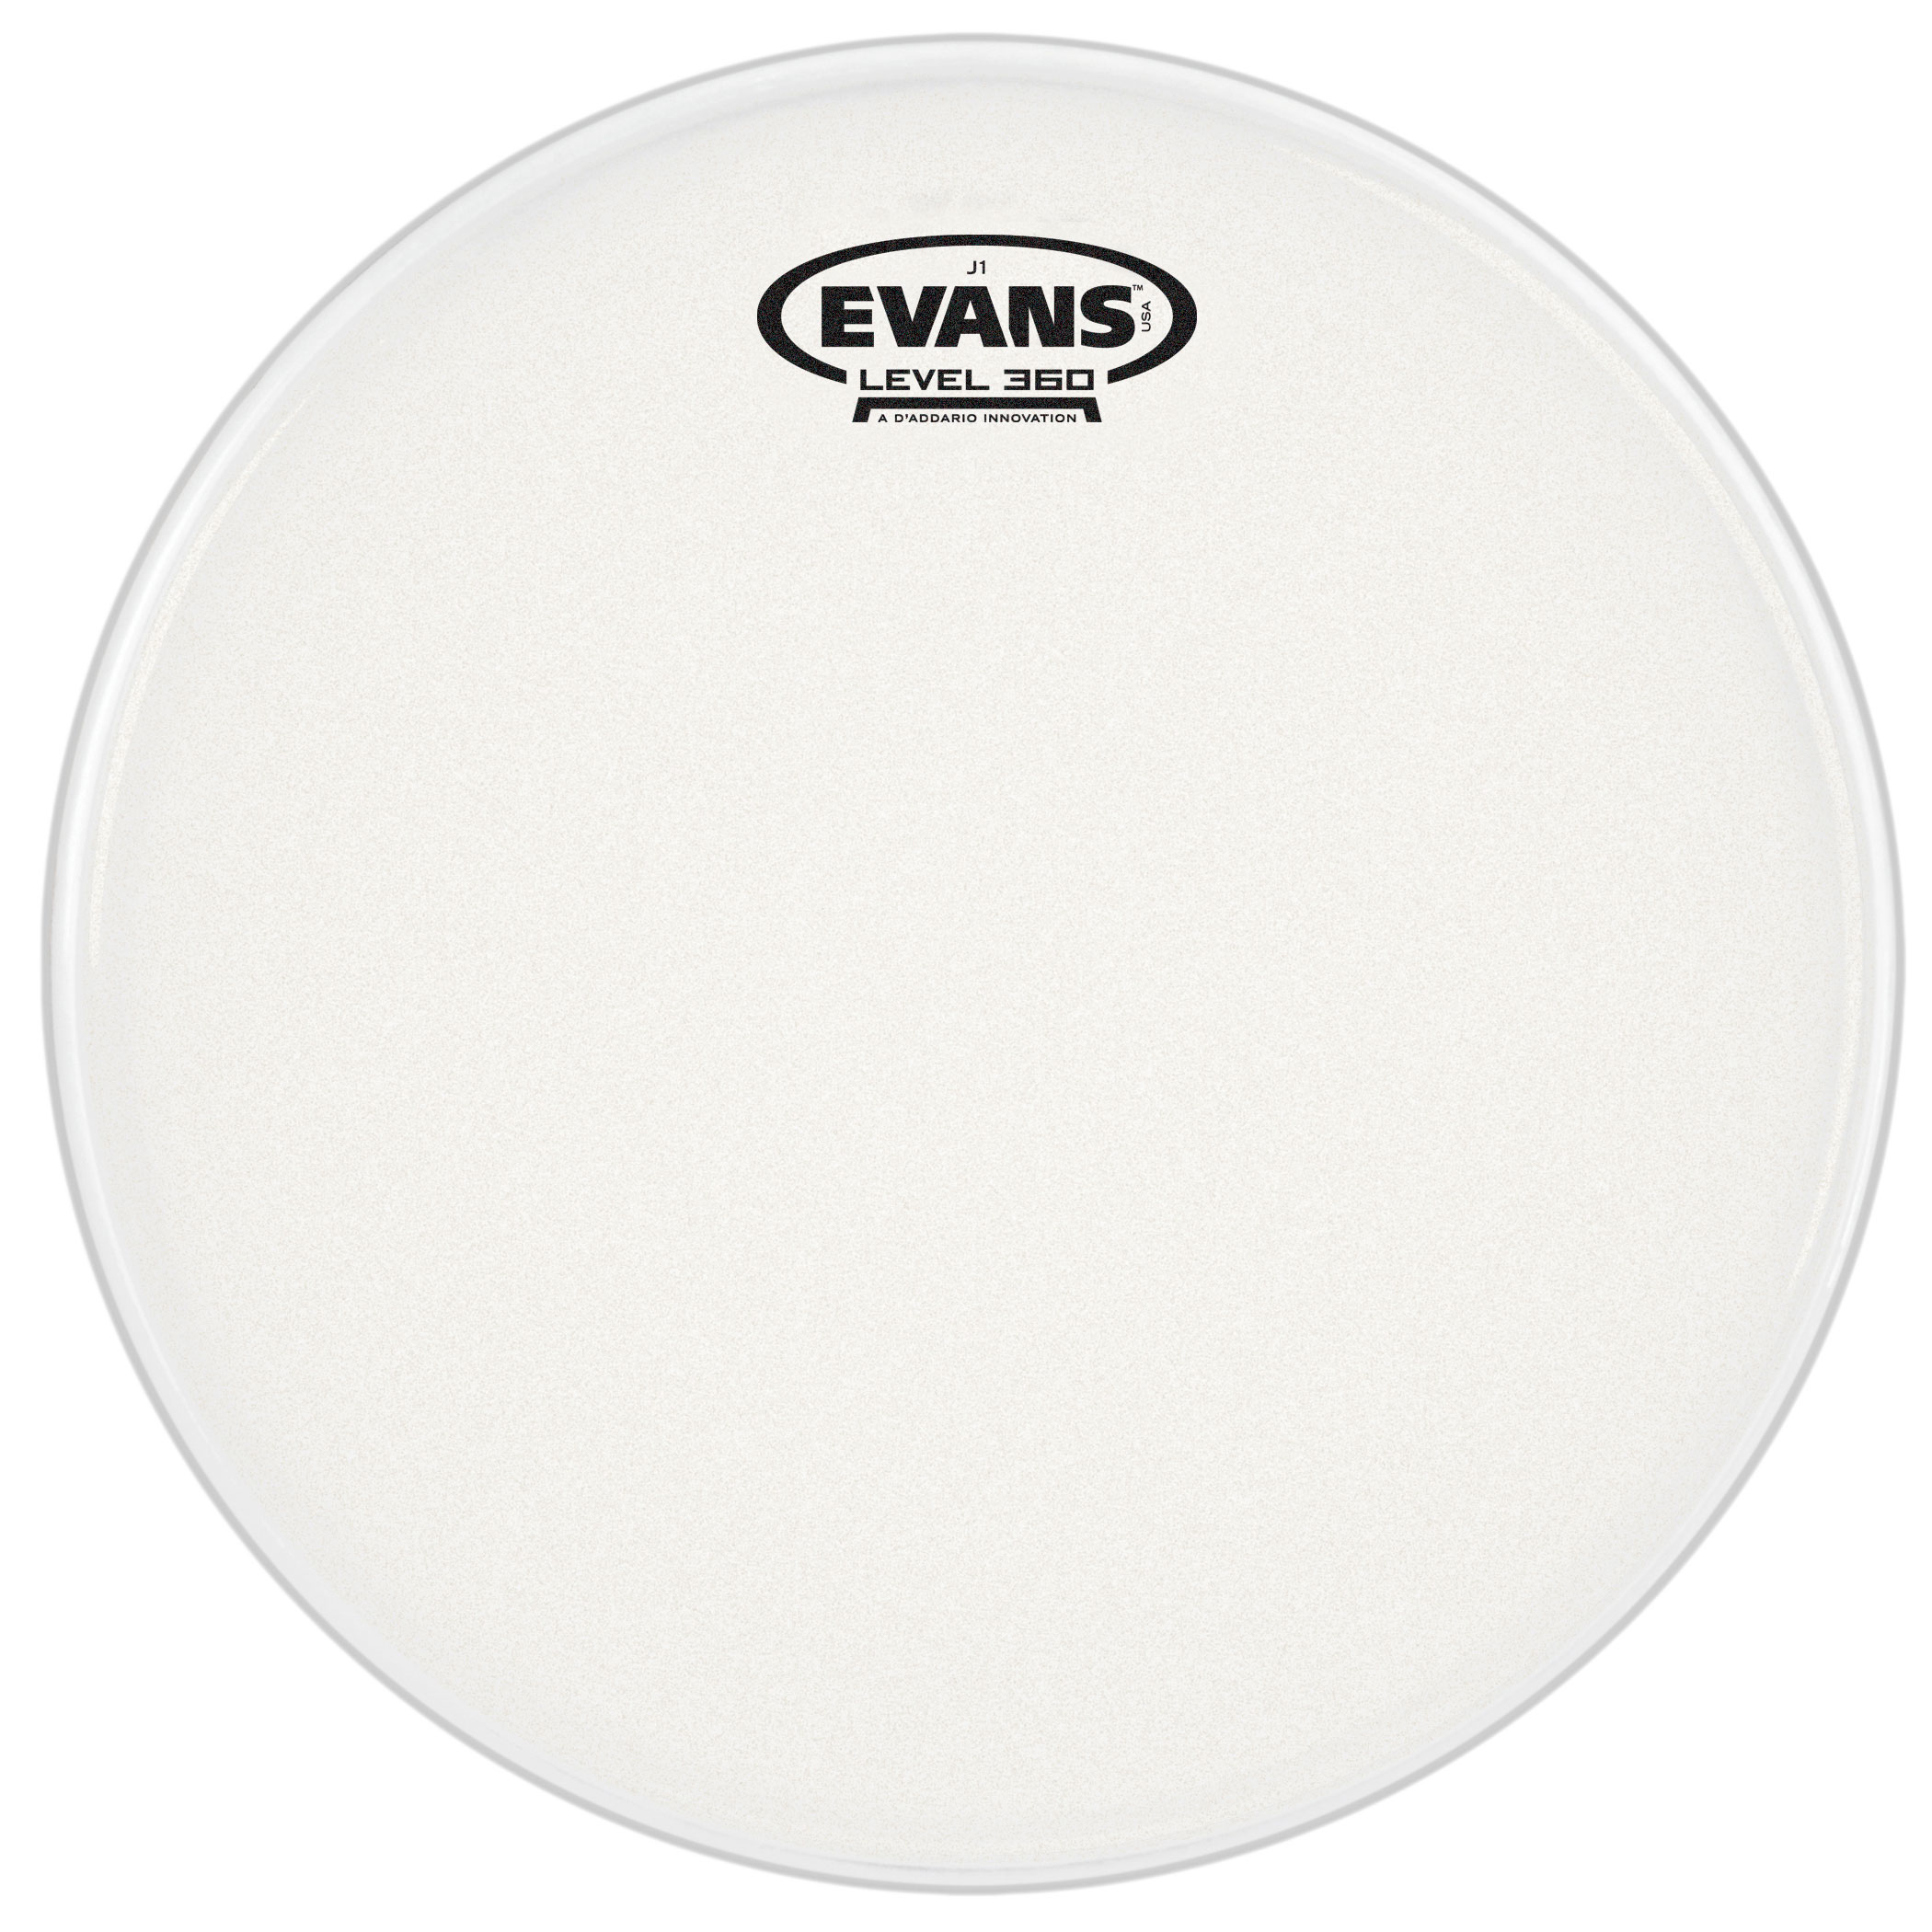 "Evans 12"" J1 Etched Head"